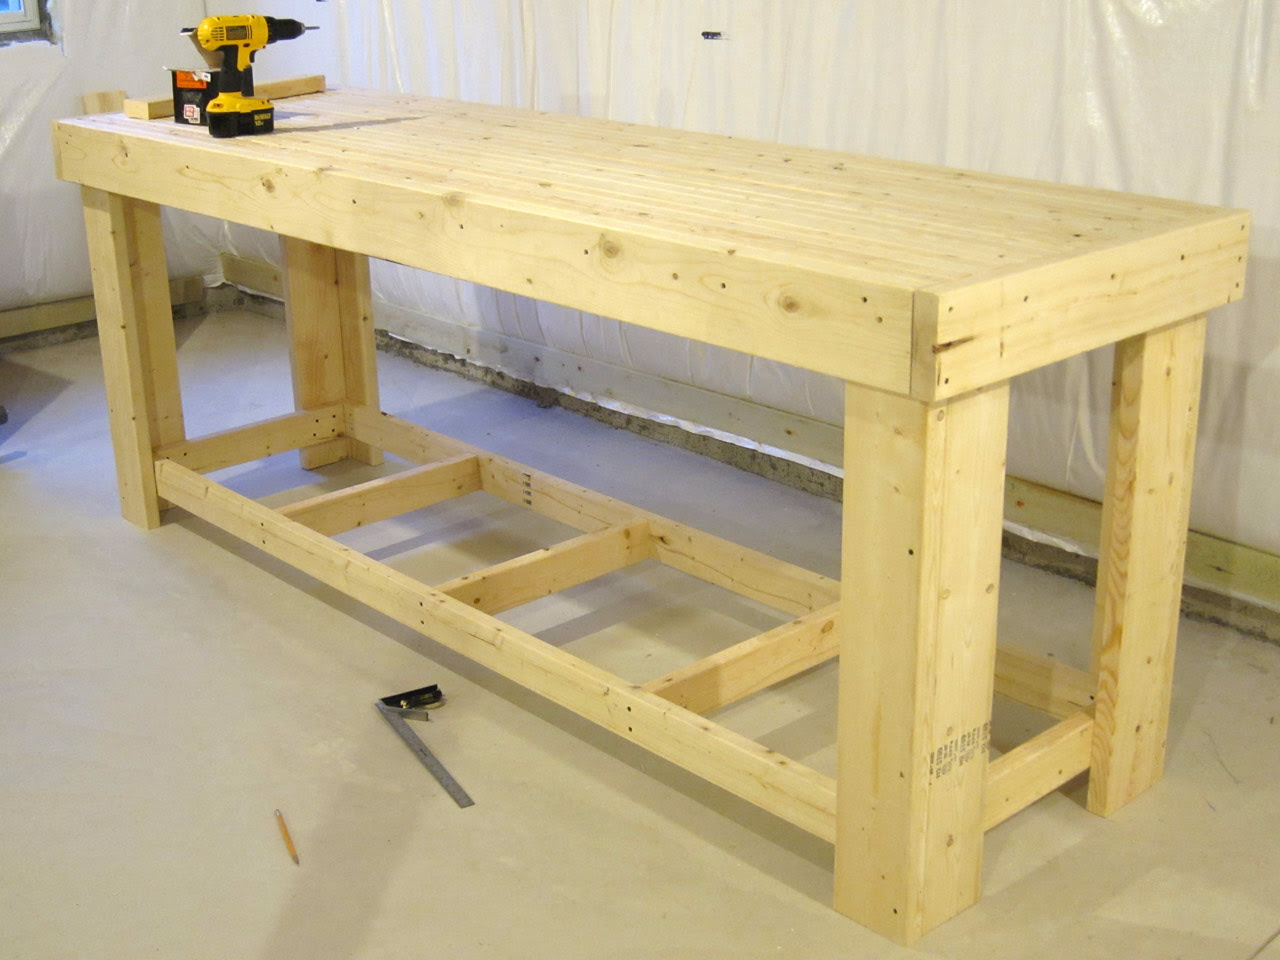 2x4 Woodworking Bench - Easy DIY Woodworking Projects Step ...